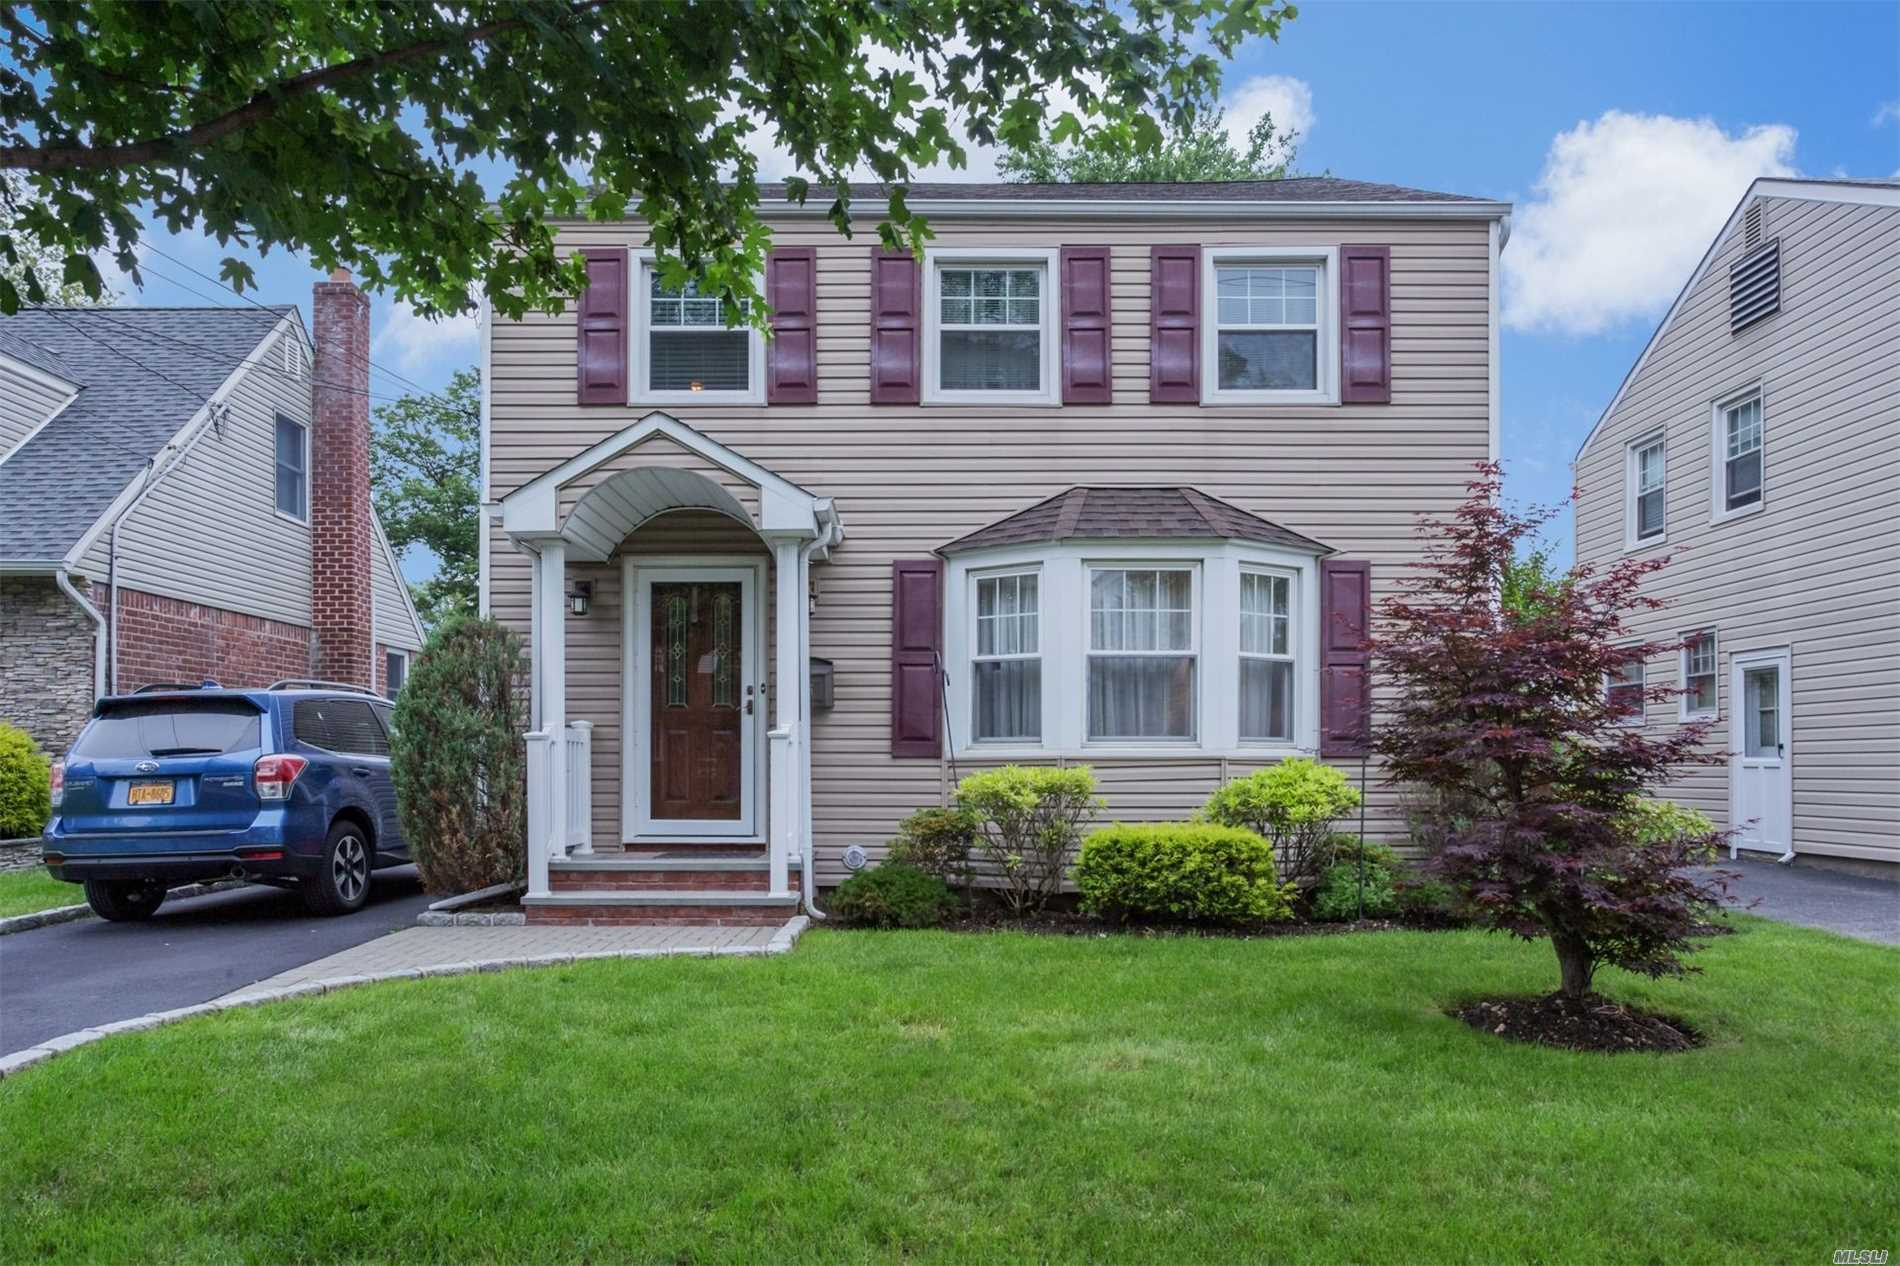 Outstanding Mid-Block Colonial, All Updated Stainless Steel Appliances, Granite Counters, Cherry Cabinets, Near Railroad, Park & Schools. A Must See!